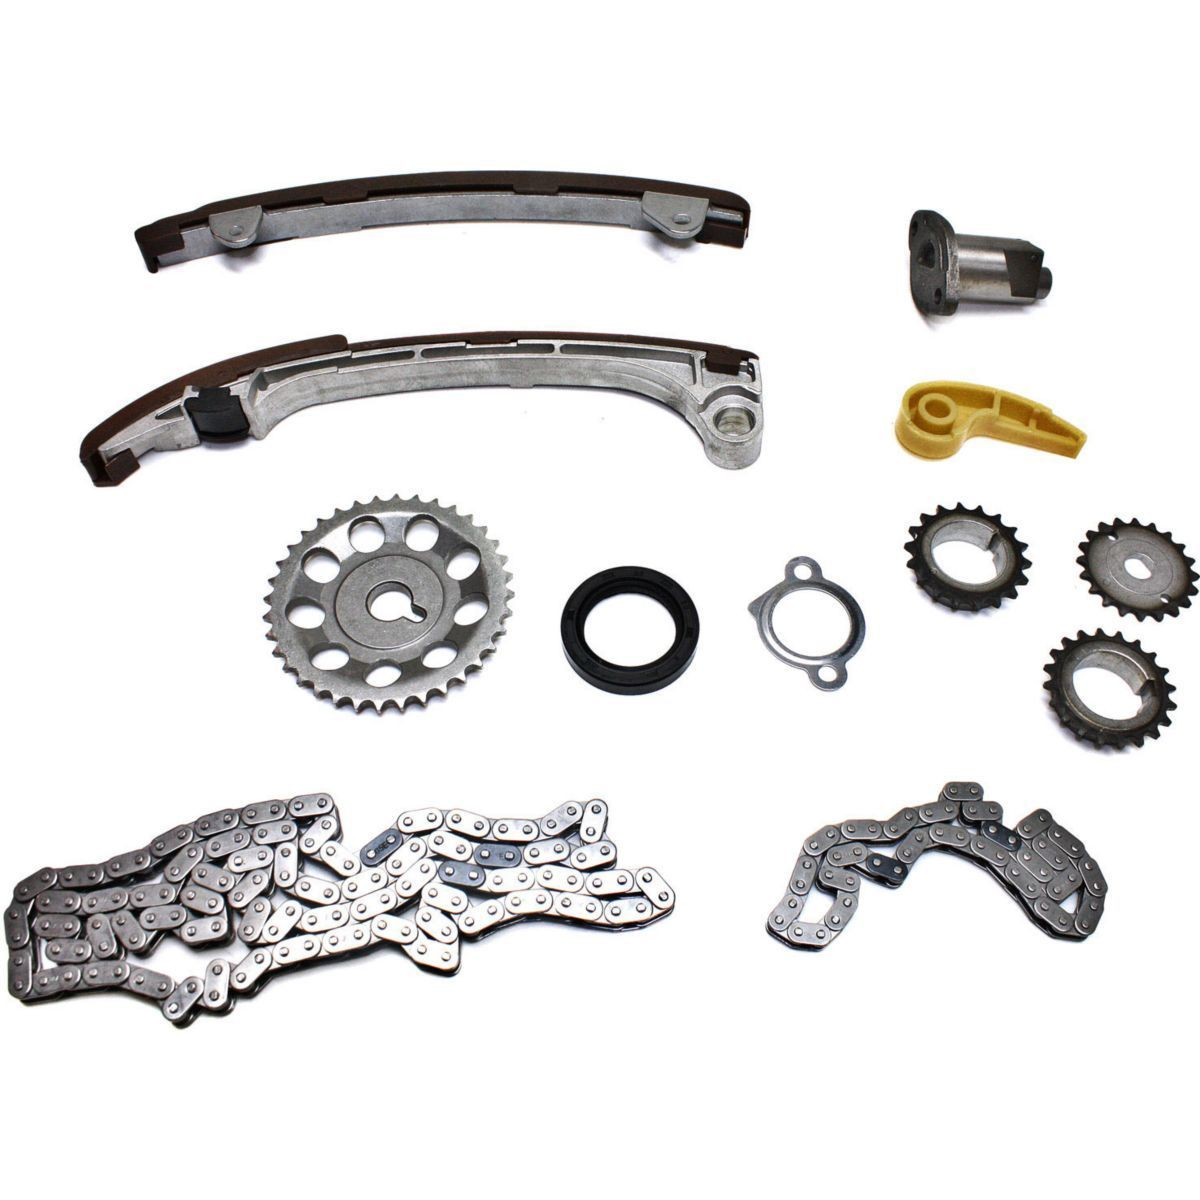 New Timing Chain Kit For Scion Scion Xb